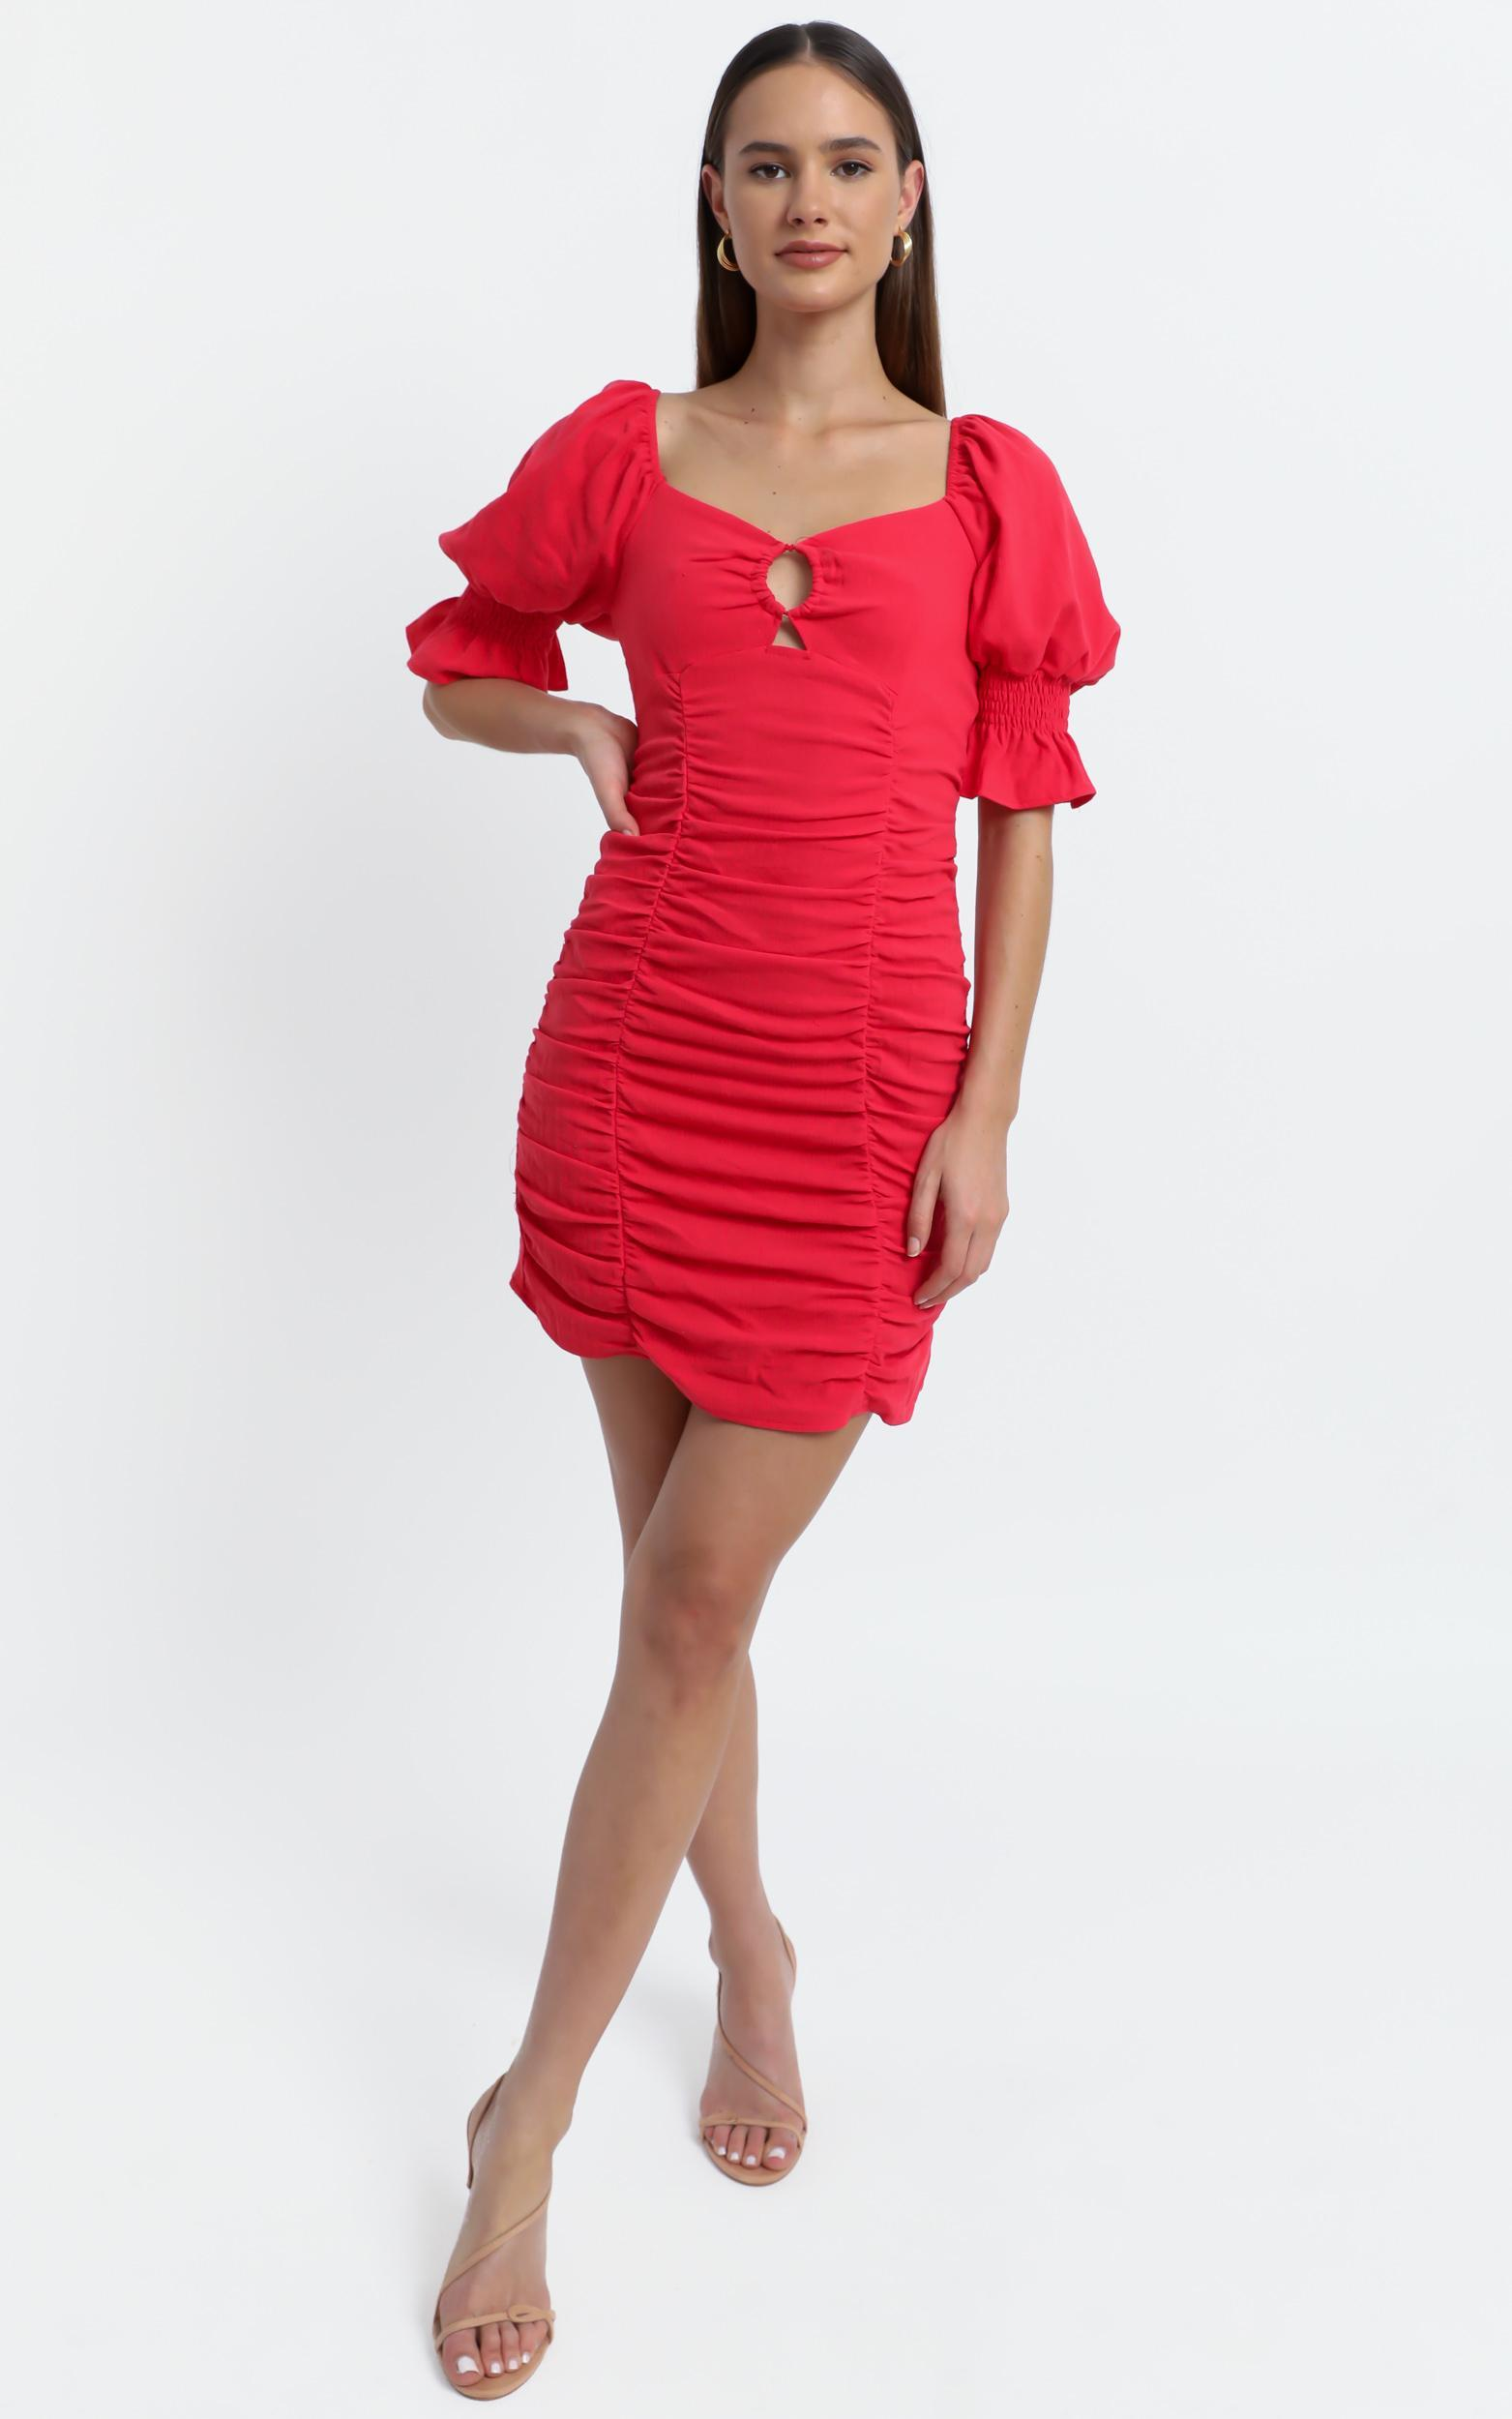 Coty Dress in Red - 6 (XS), Red, hi-res image number null